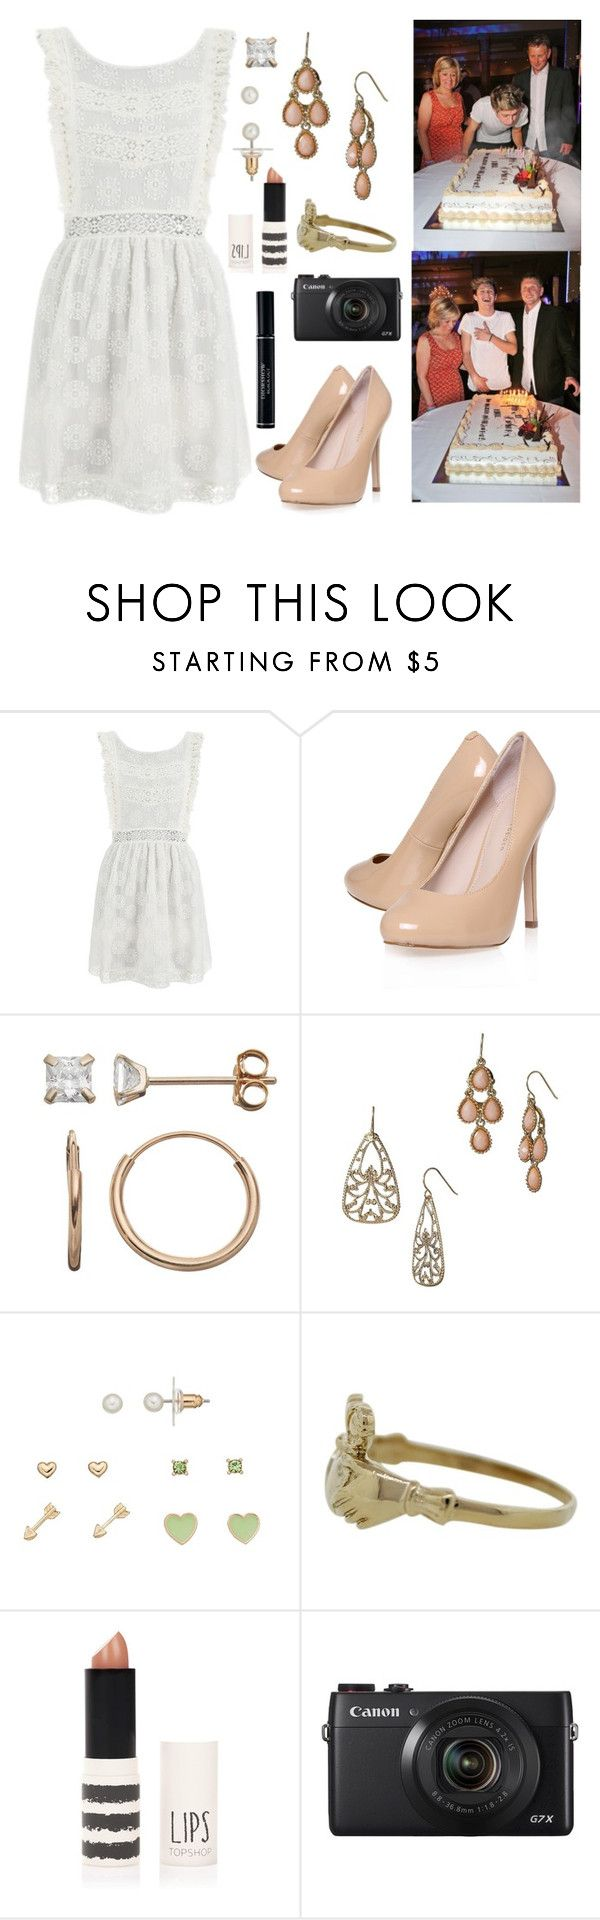 """Niall's Birthday Party"" by fanficqueen13 ❤ liked on Polyvore featuring MINKPINK, KG Kurt Geiger, Taylor Grace, LC Lauren Conrad, Topshop, OneDirection, Niall and horan"